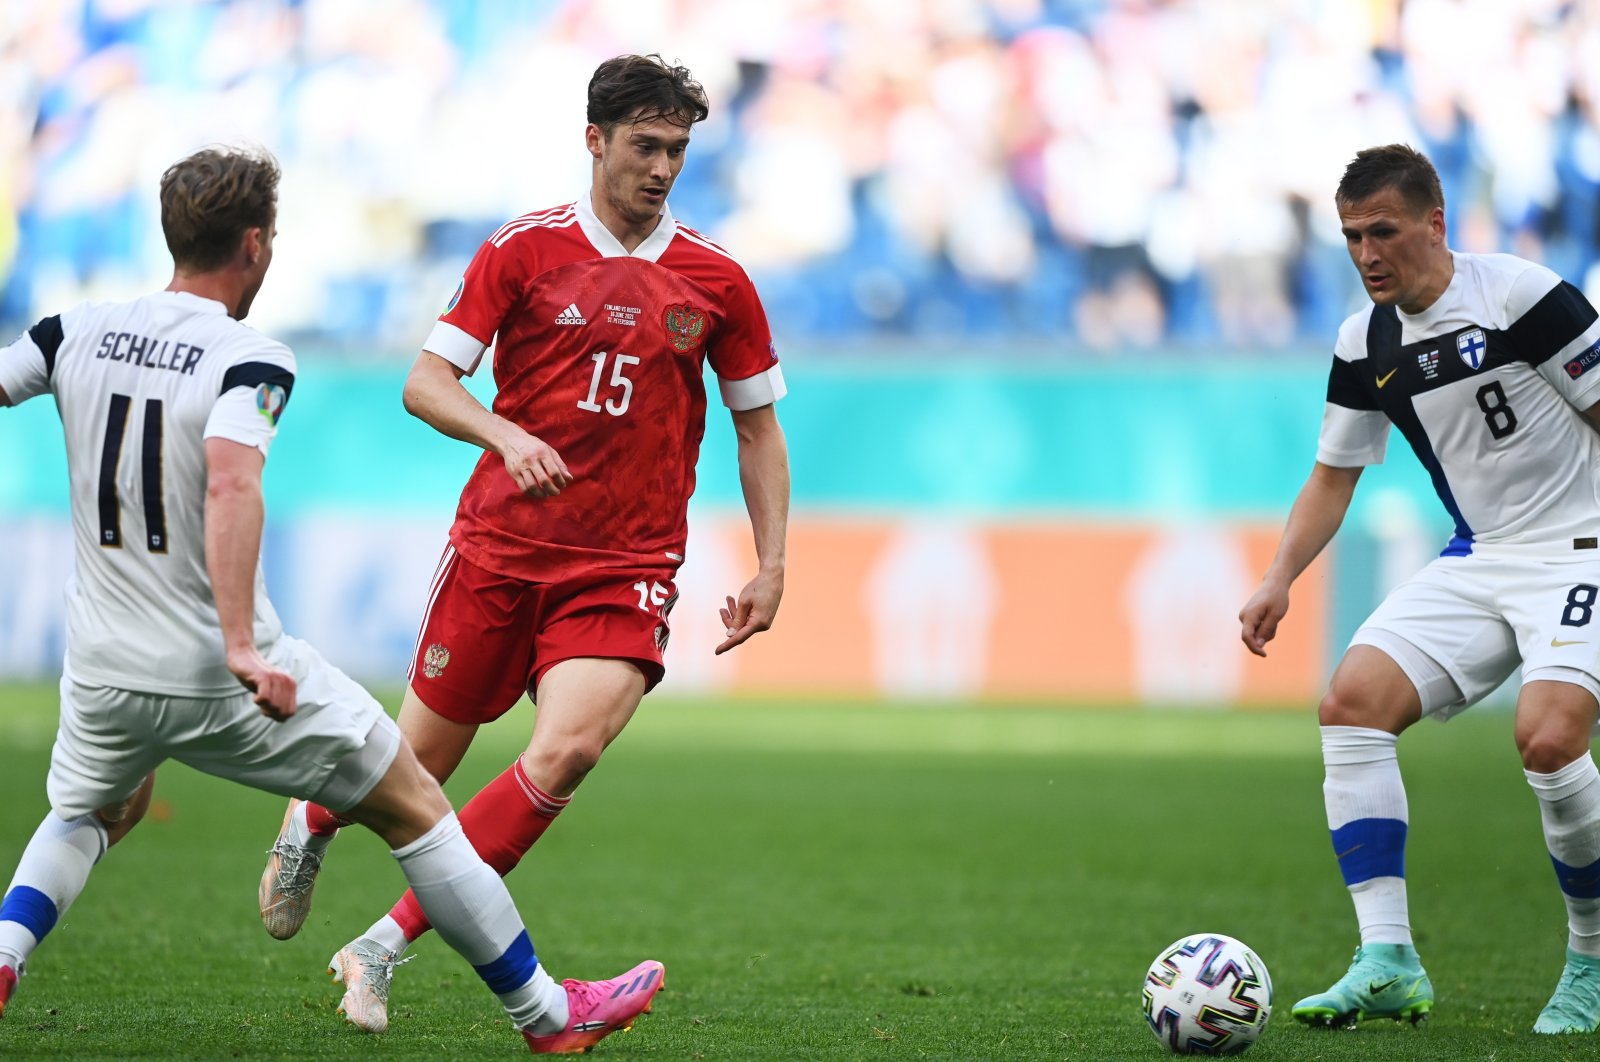 Russia's Aleksei Miranchuk (C) in action during a Euro 2020 match against Finland, in St. Petersburg, Russia, June 16, 2021. (EPA Photo)